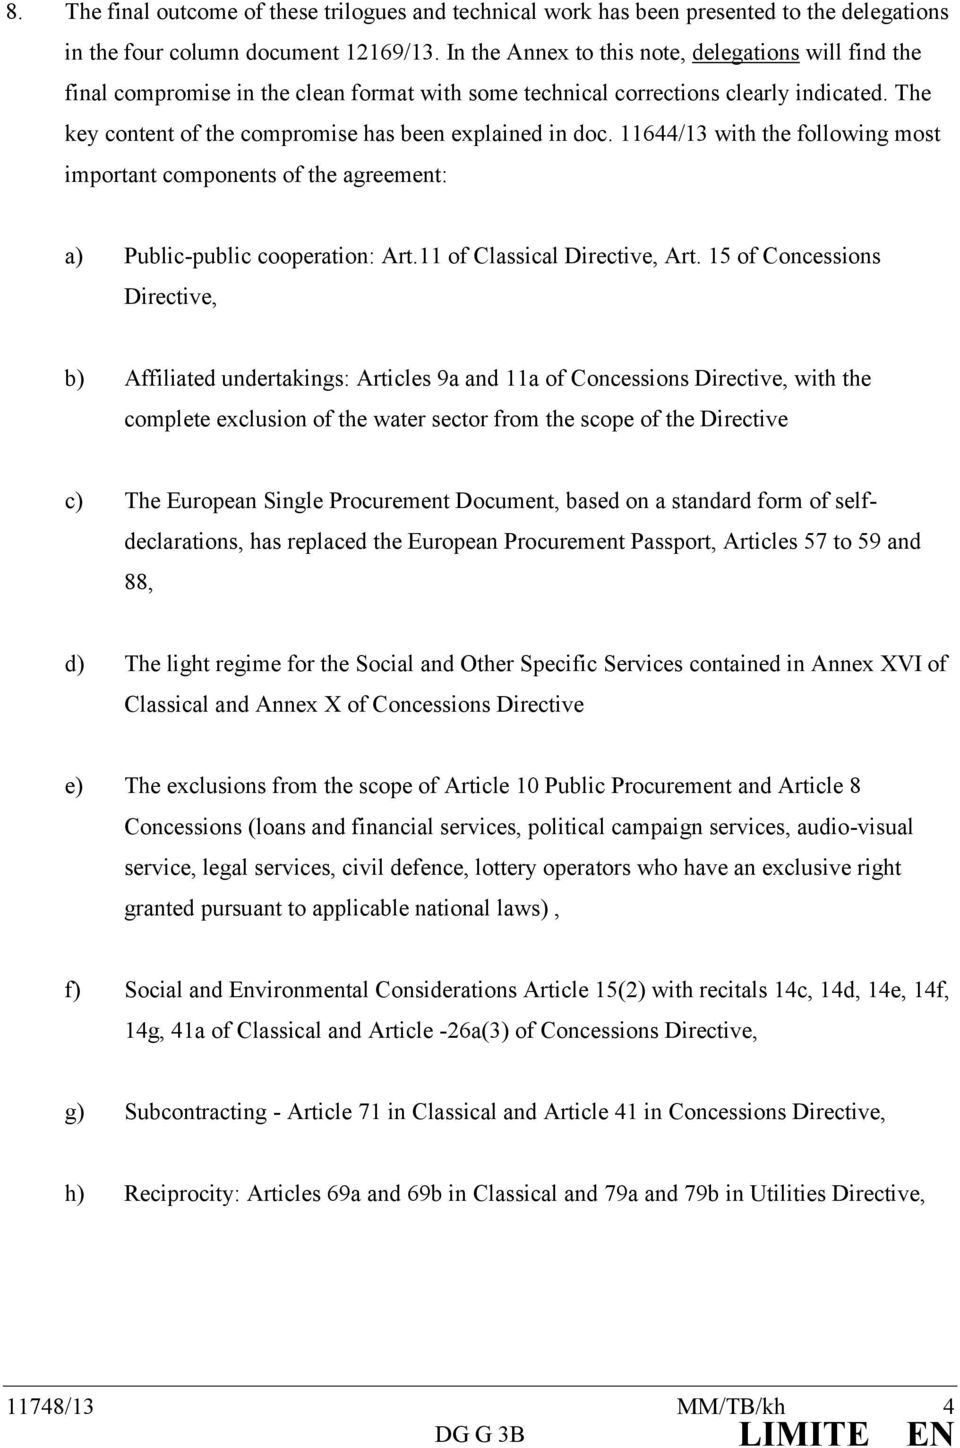 The key content of the compromise has been explained in doc. 11644/13 with the following most important components of the agreement: a) Public-public cooperation: Art.11 of Classical Directive, Art.